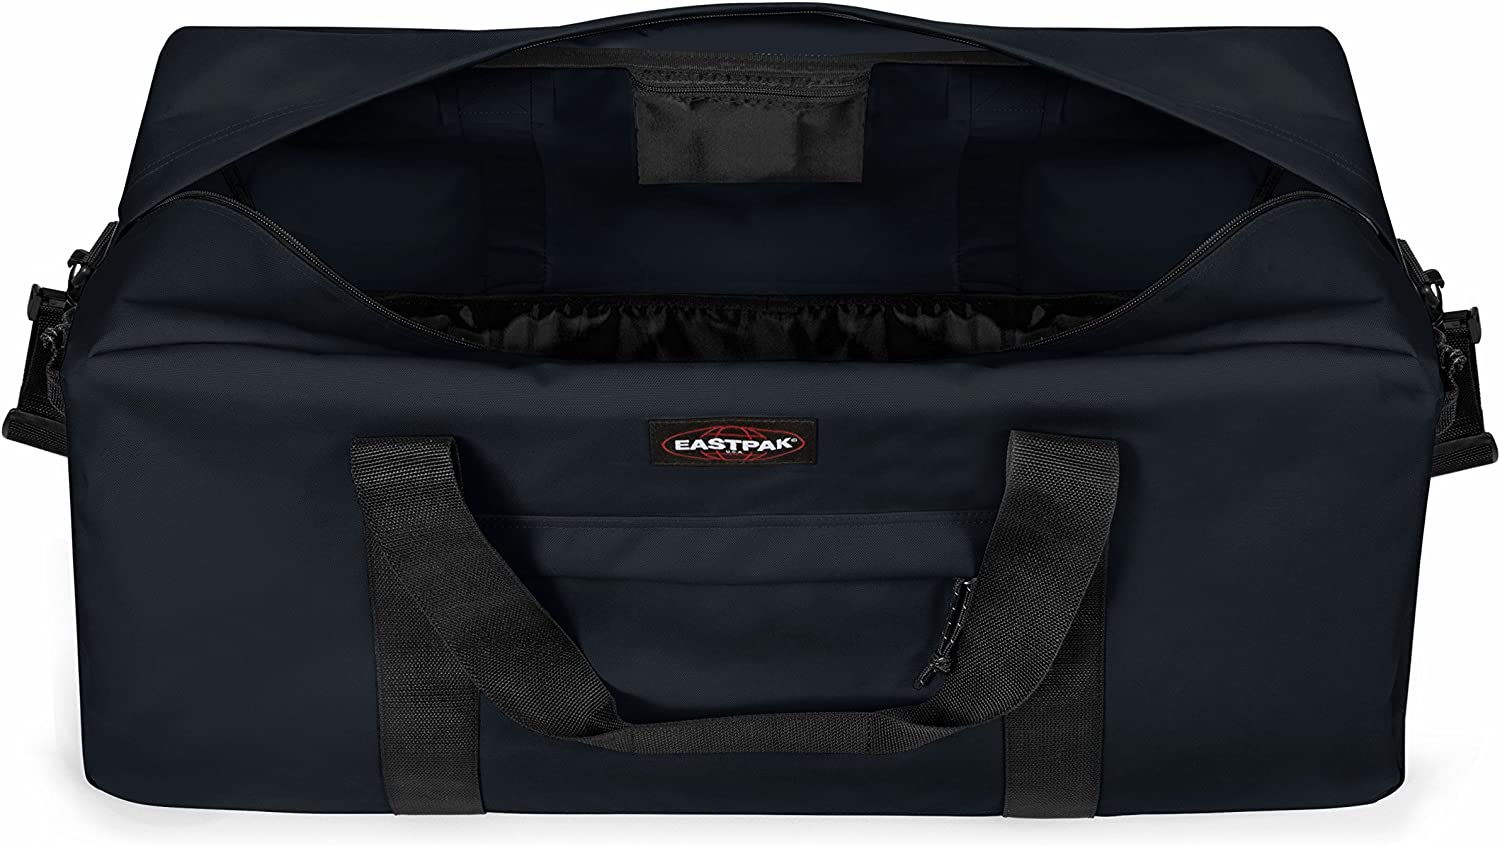 Cloud Navy 75 cm Sac de voyage 96 liters Bleu Eastpak TERMINAL